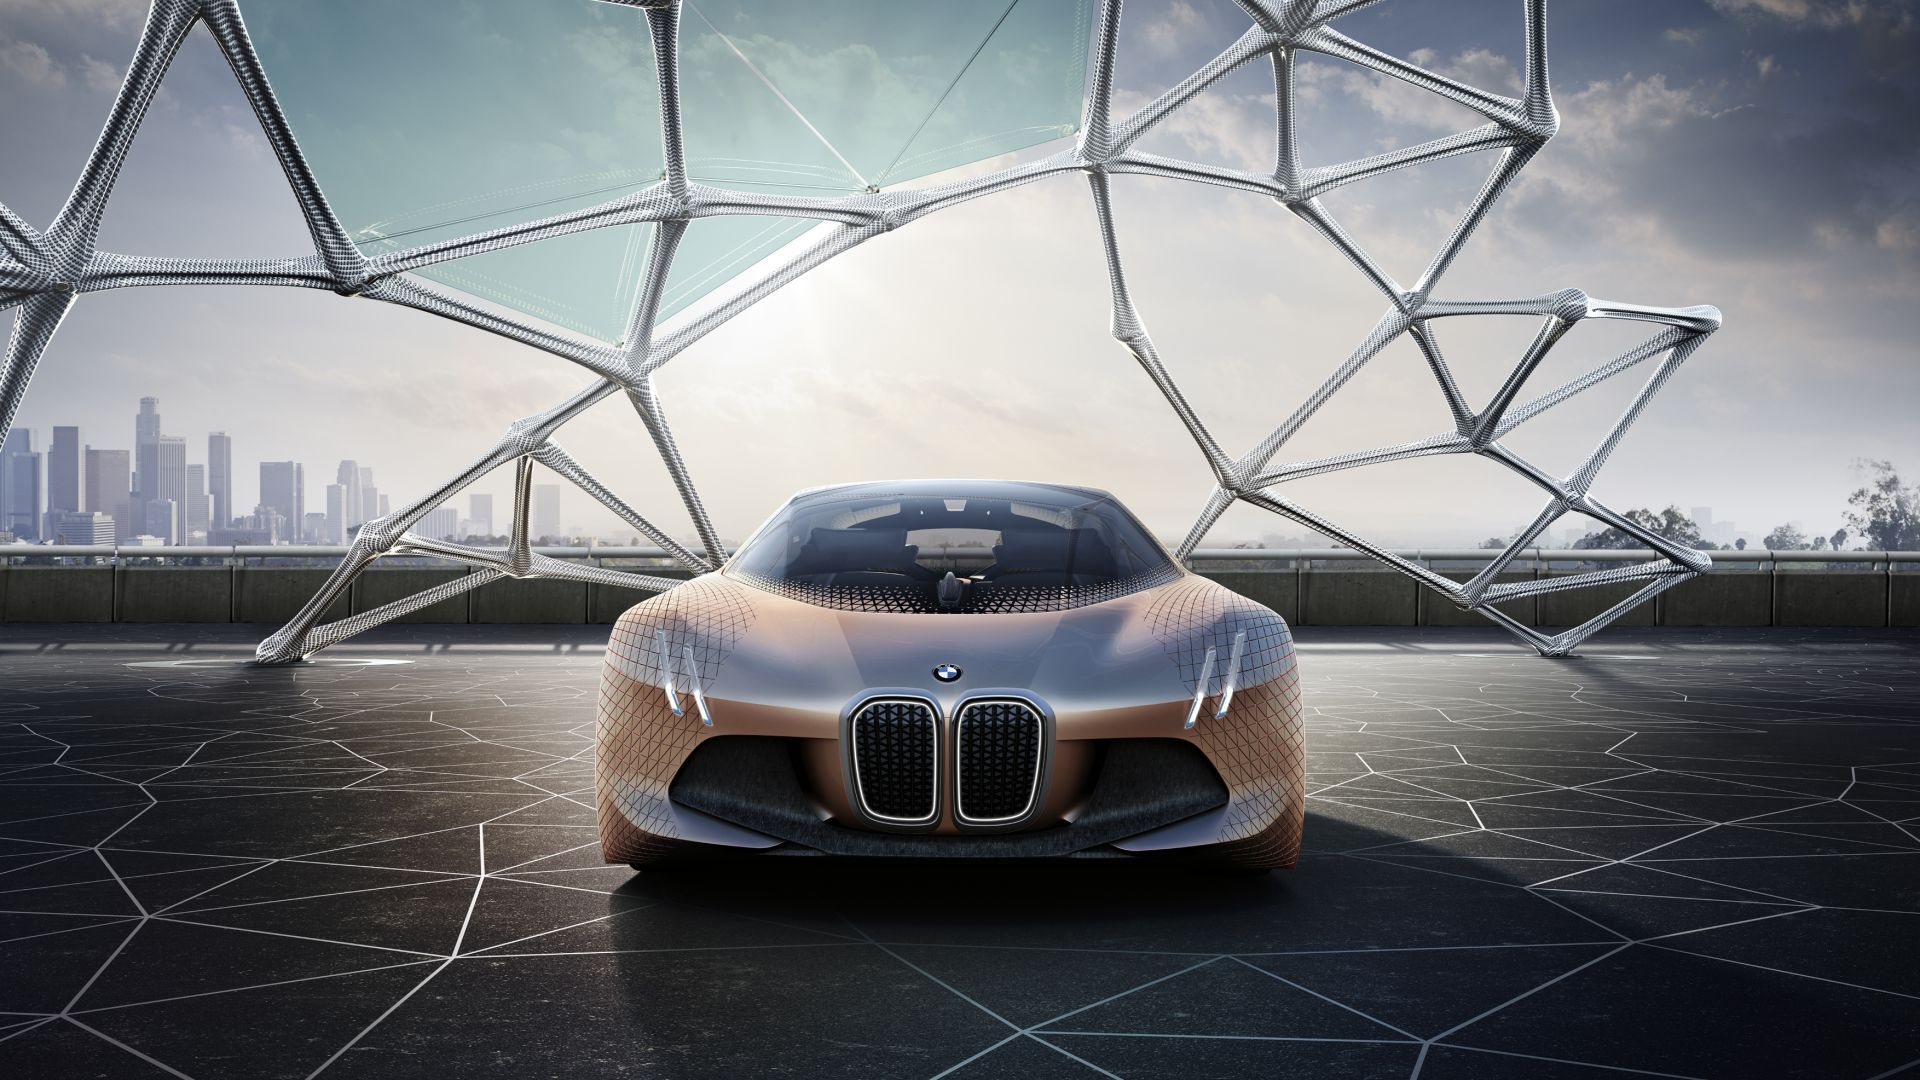 Wallpaper Bmw Vision Next 100 Future Cars Luxury Cars Cars Bikes 9366 Bmw Futuristic Cars Concept Futuristic Cars